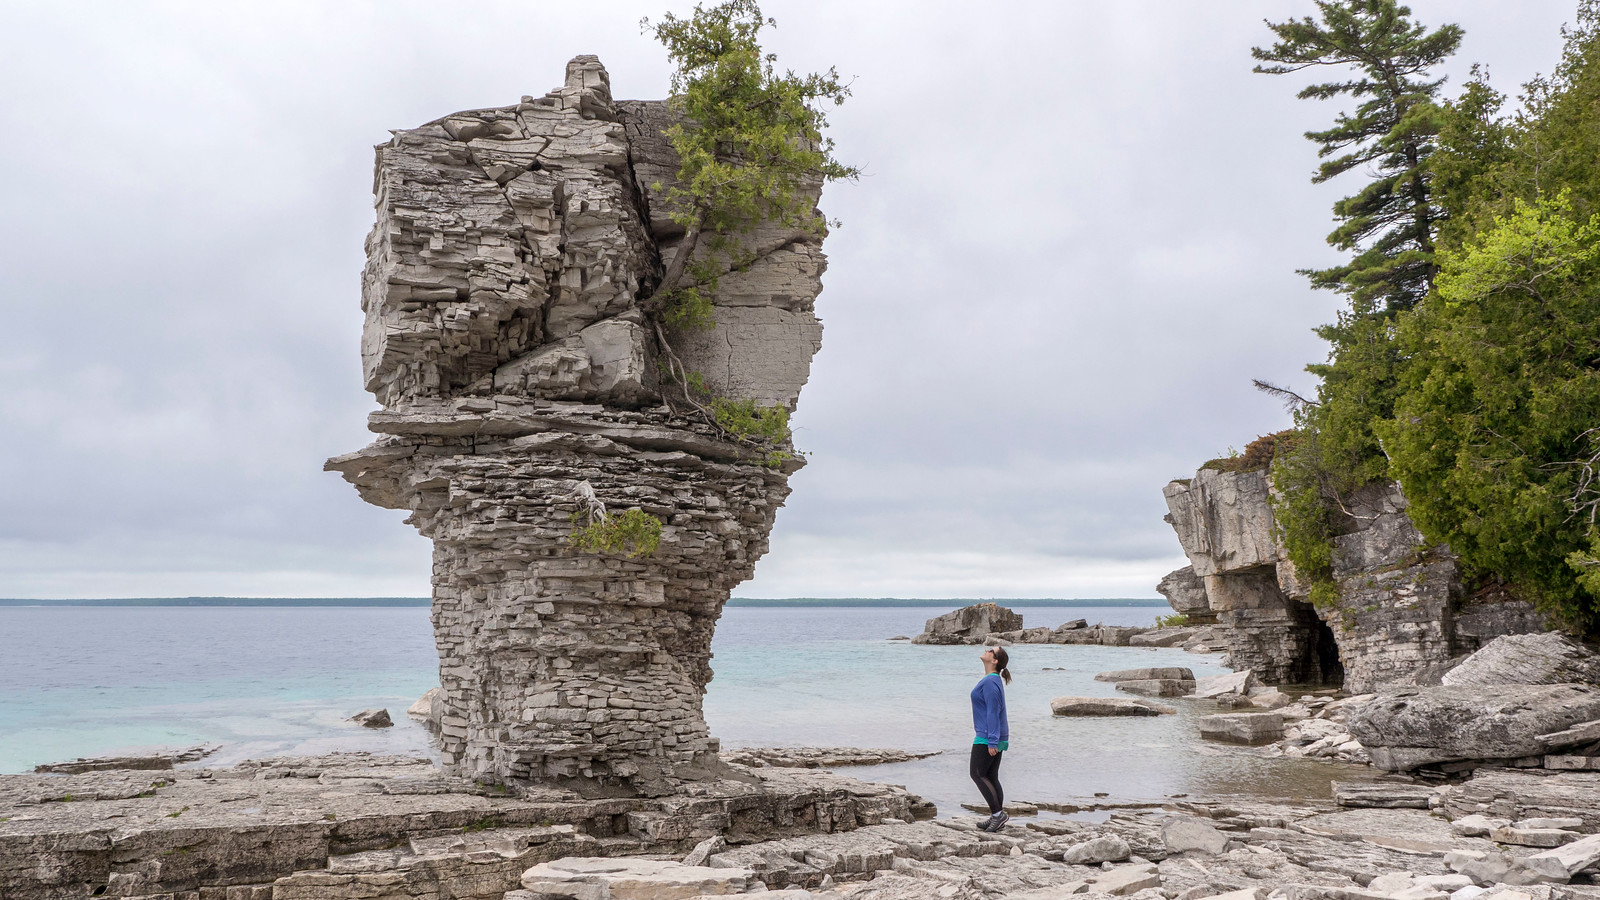 Flowerpot rock formation at Flowerpot Island near Tobermory, Ontario. Best Bruce Peninsula Hiking Trails for Nature Lovers